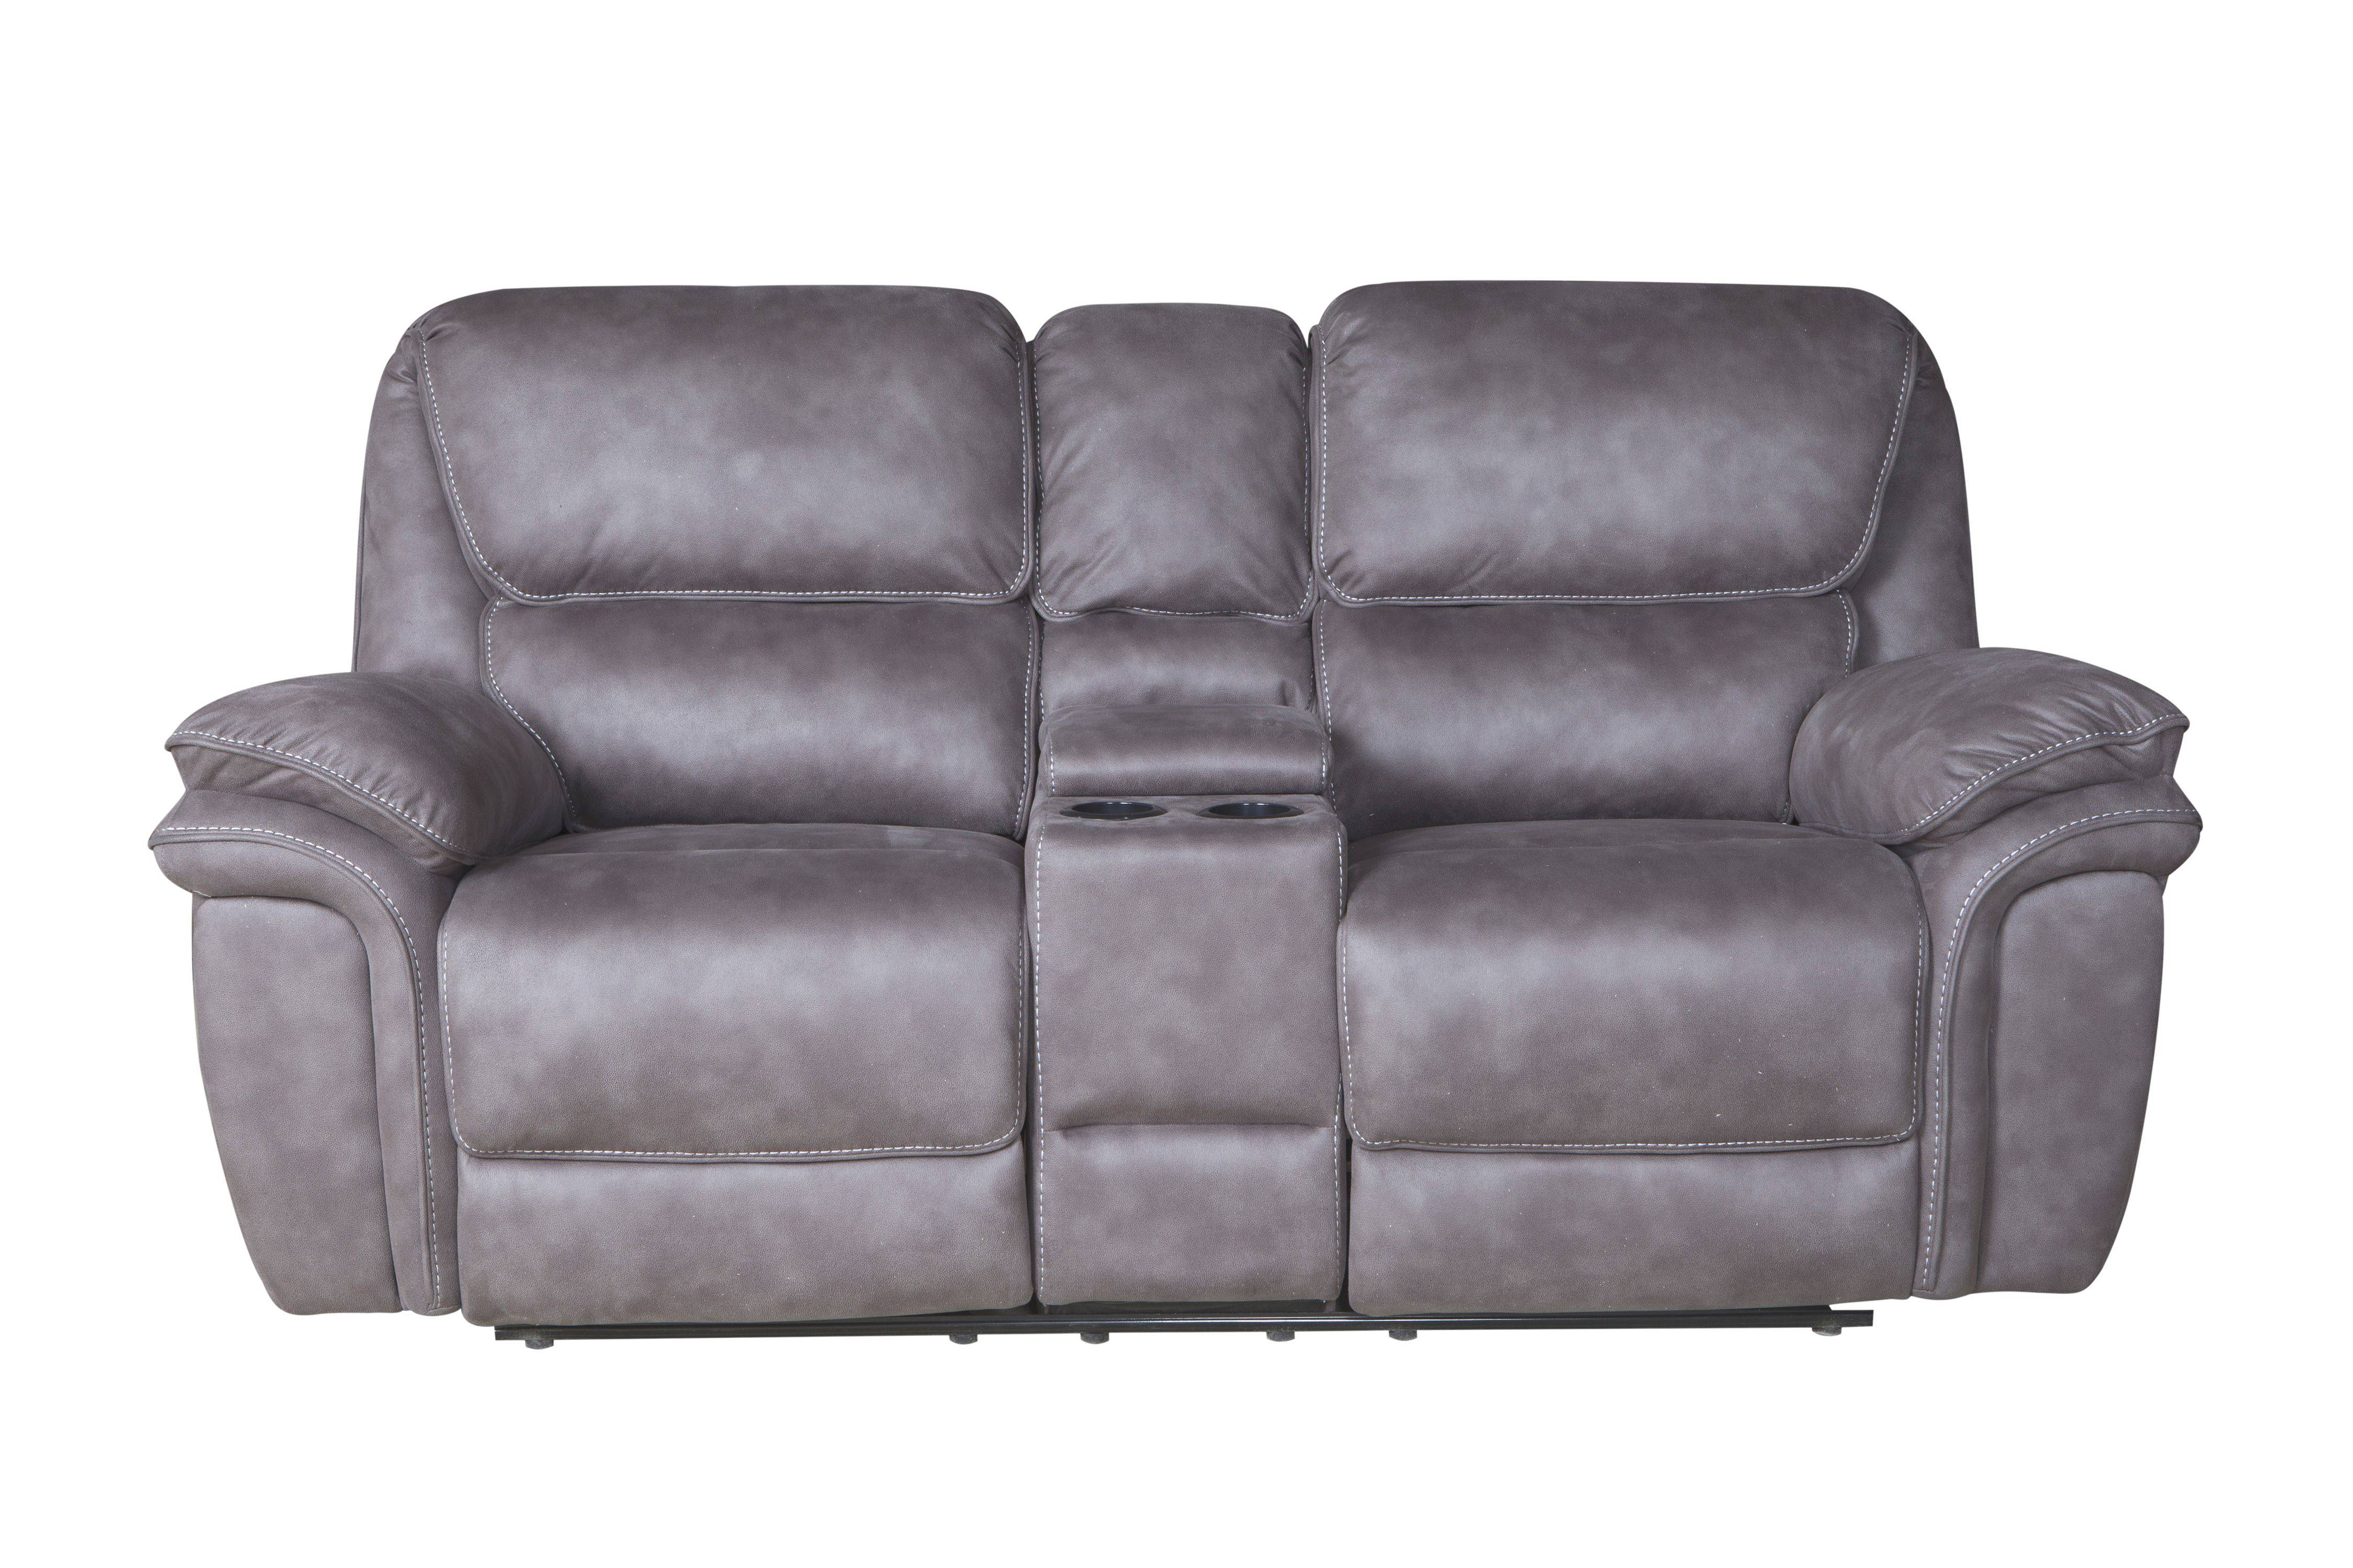 2019 living room furniture lounge recliner sofa with cup holder